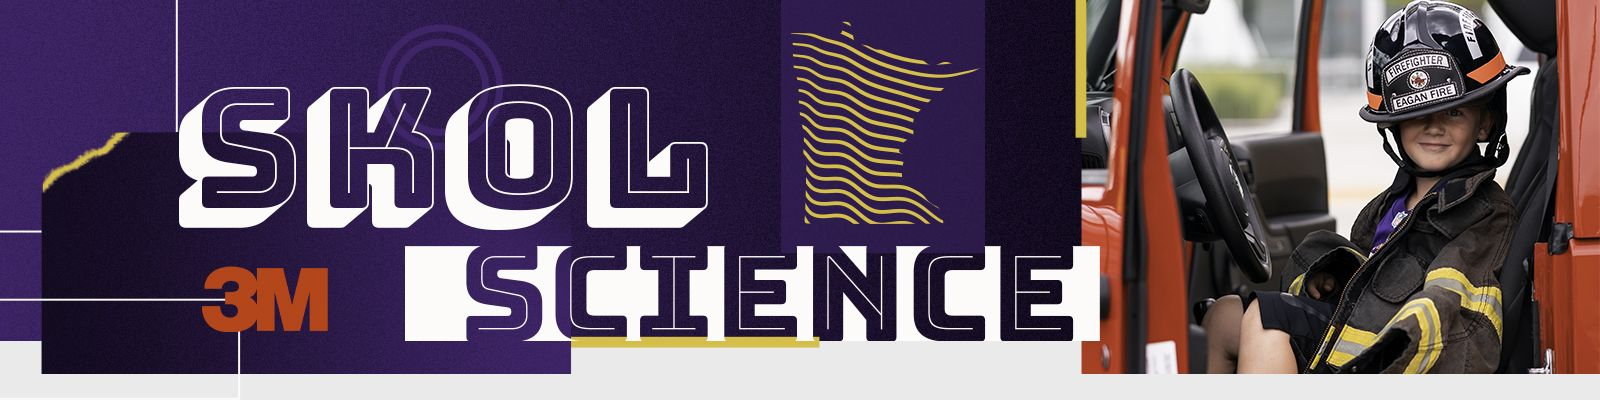 SkolScience_3M_Header_1600x400